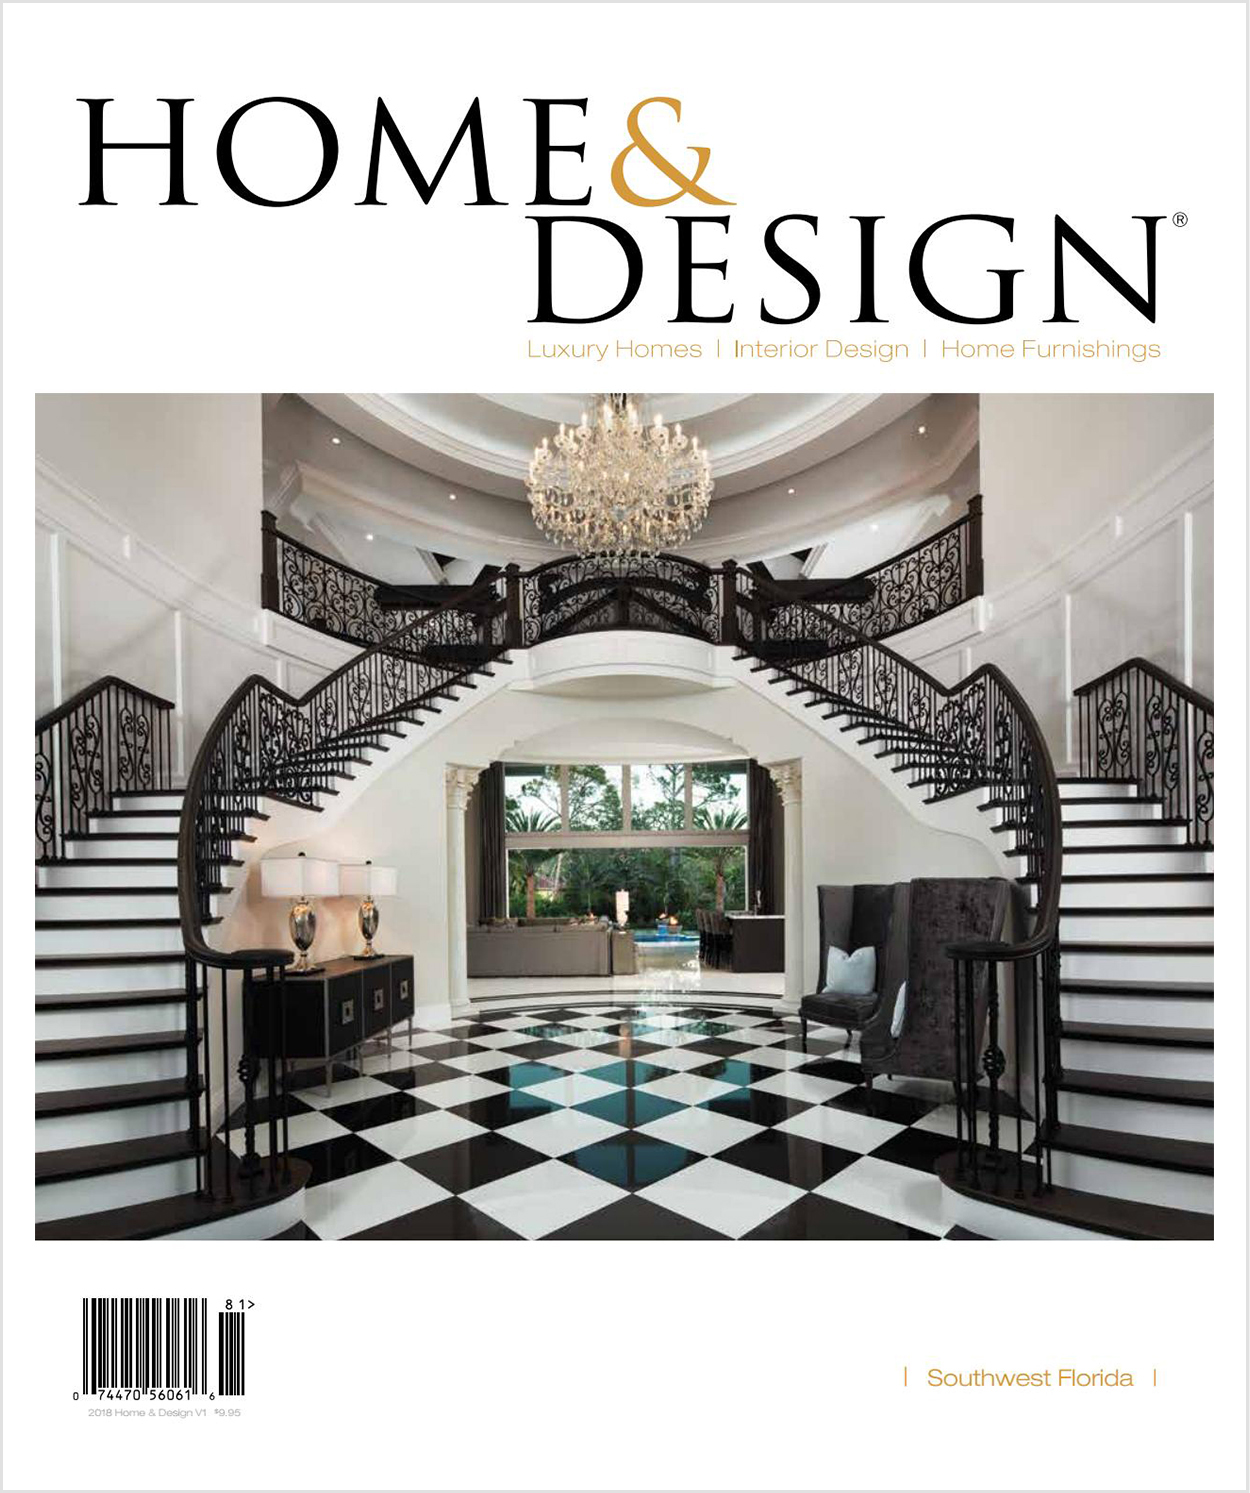 HOME & DESIGN southwest florida 2018 volume 1_062819.jpg